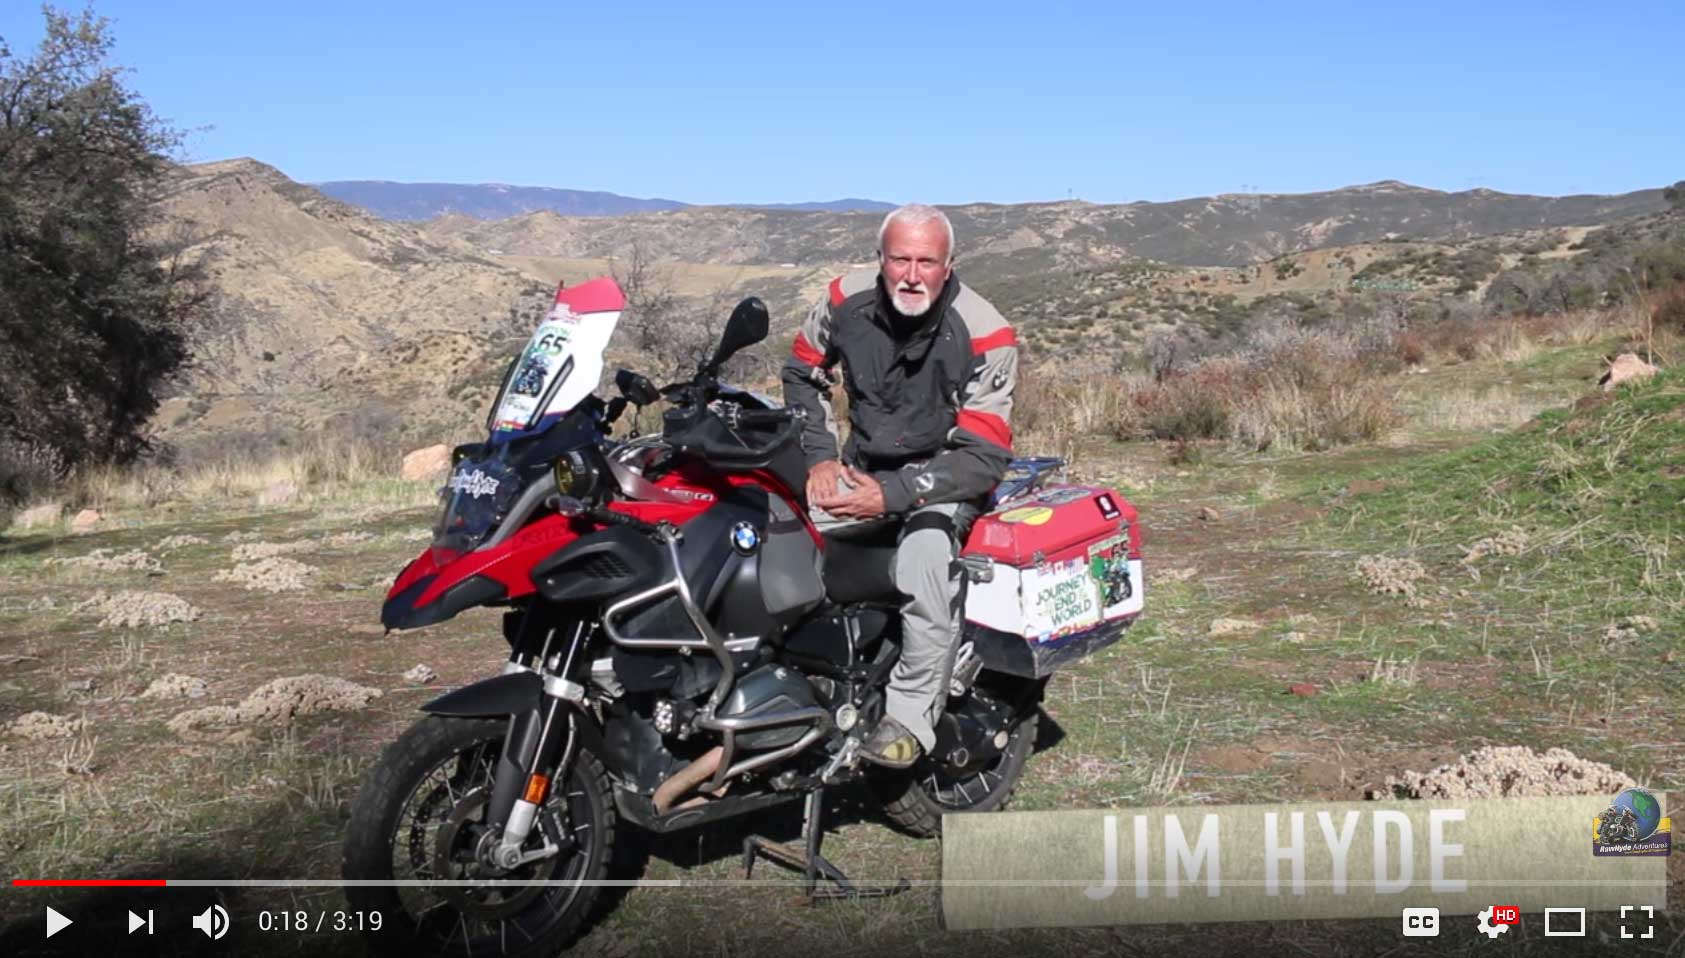 Why is that you always see BMW GS riders standing up when they're riding dirt roads and trails? RawHyde Adventure founder Jim Hyde answers this question in the first of a series off-road riding tips for BMW GS owners.e